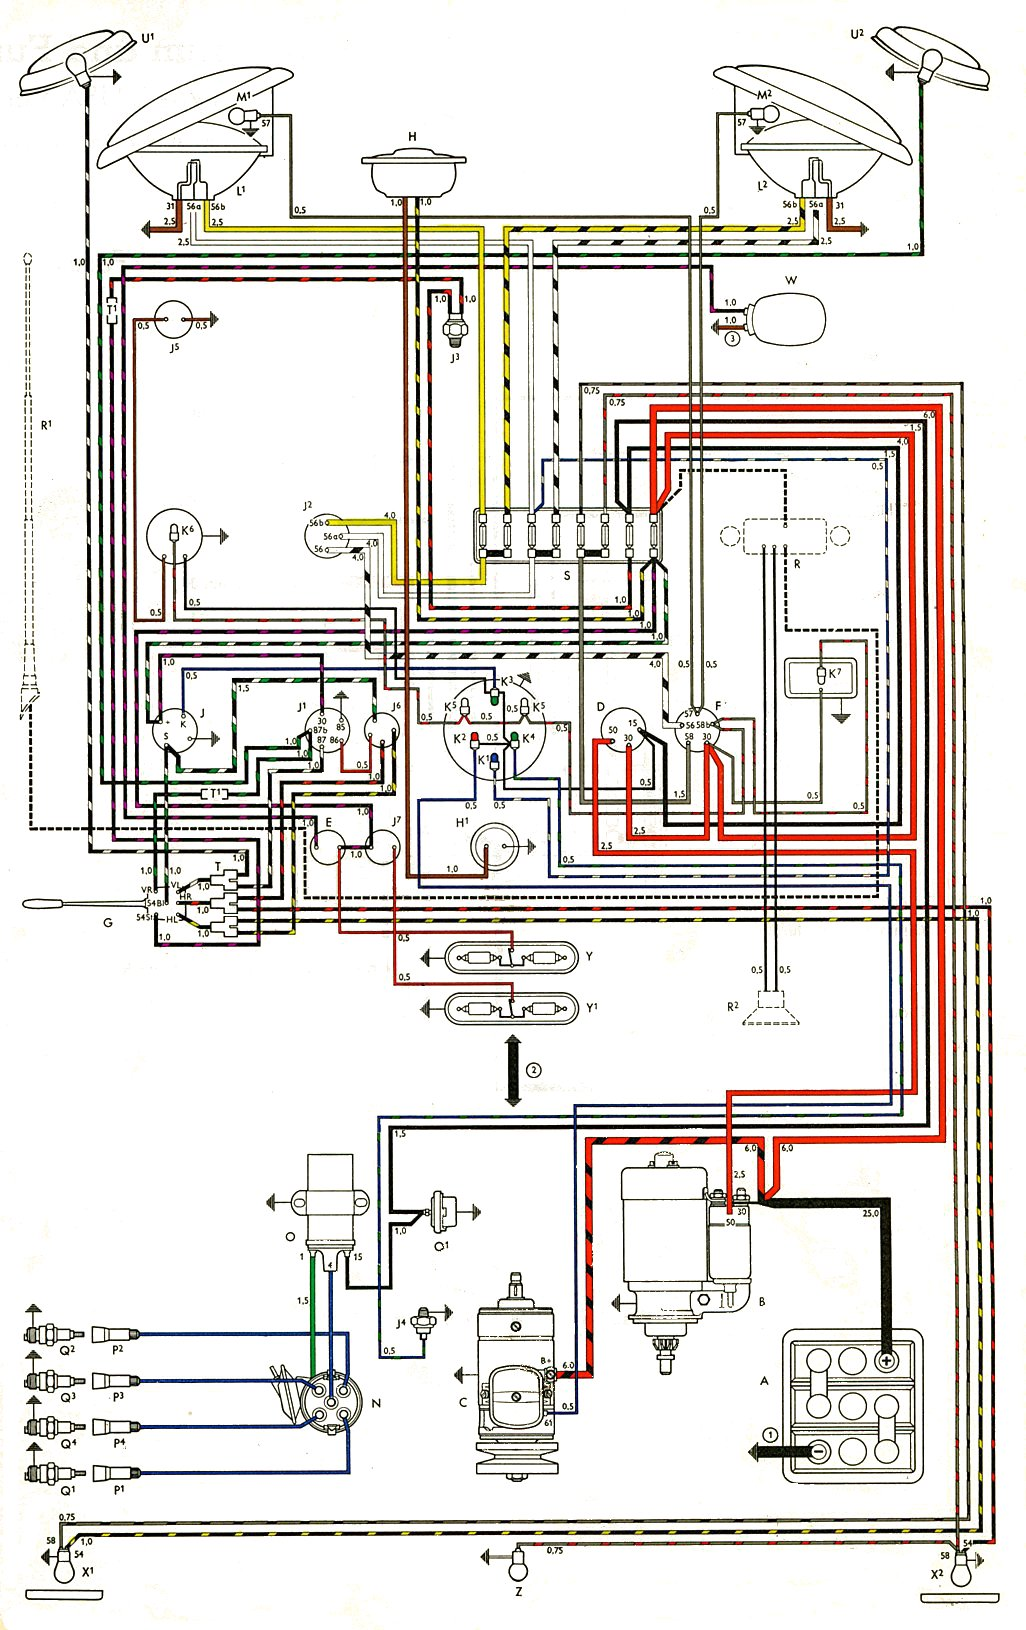 1979 vw bus wiring diagrams vw bus wiring diagrams